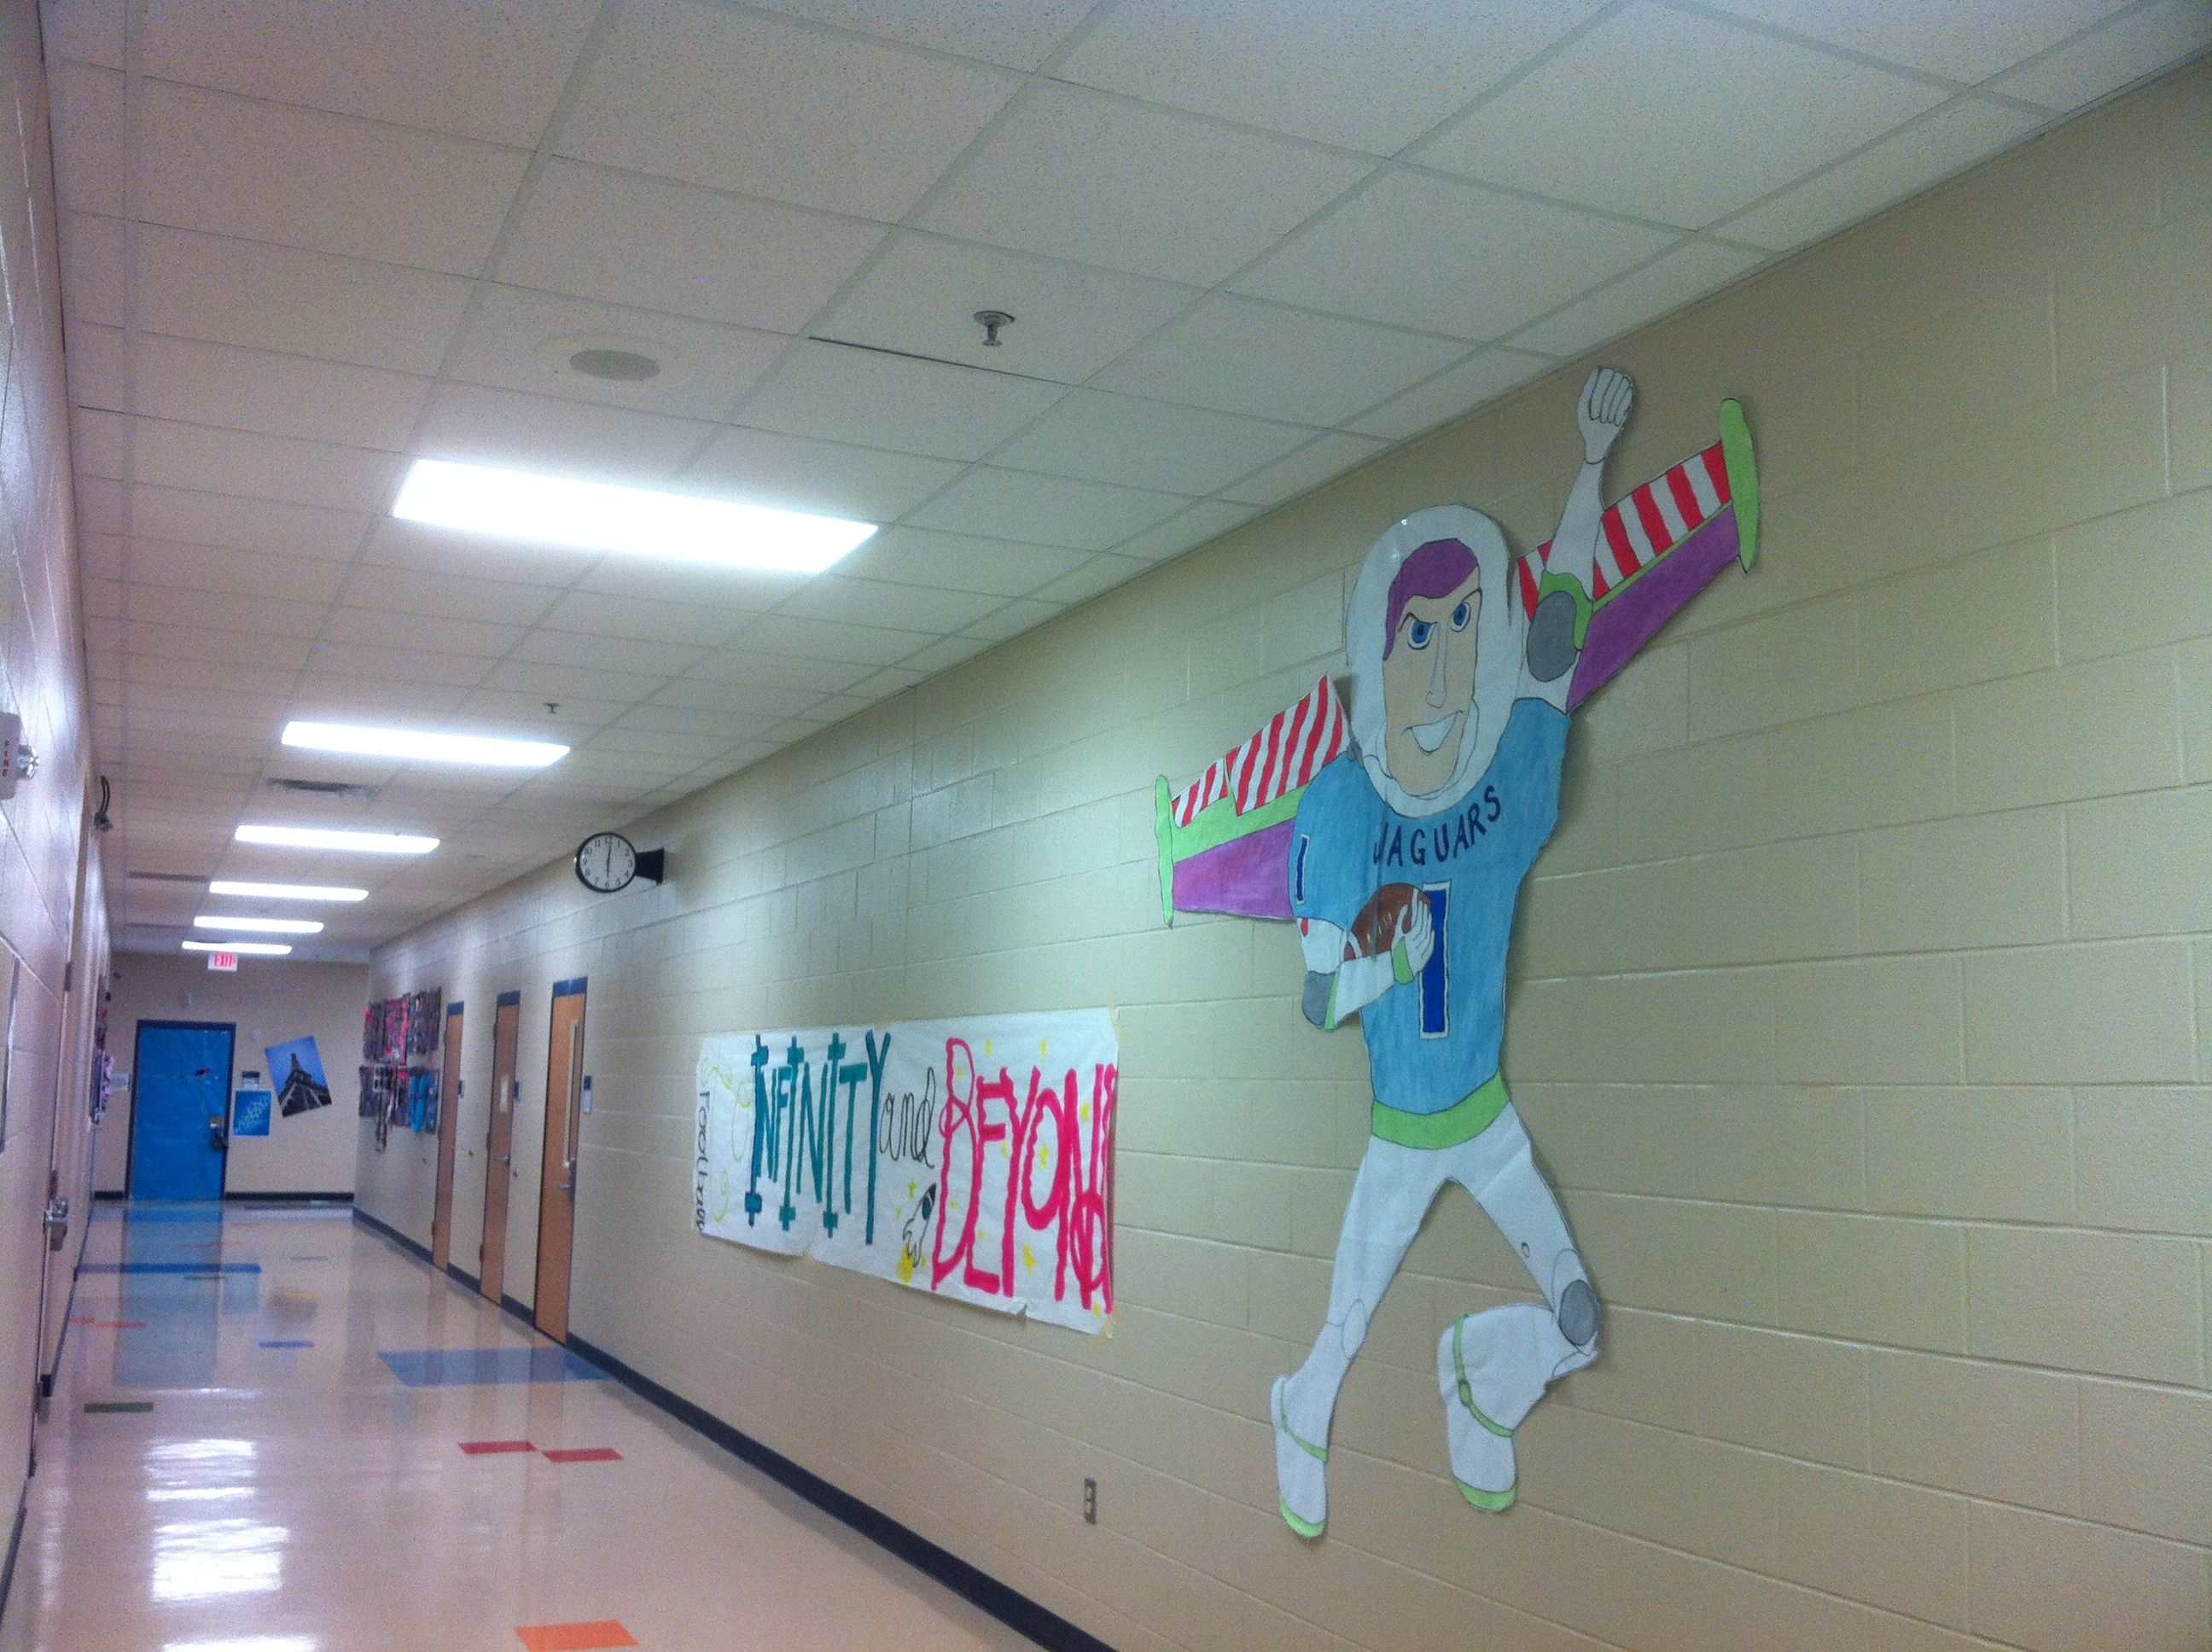 Buzz Lightyear Banner Moved To The Hallway After The Pep Rally Pep Rally Rally Idea School Spirit